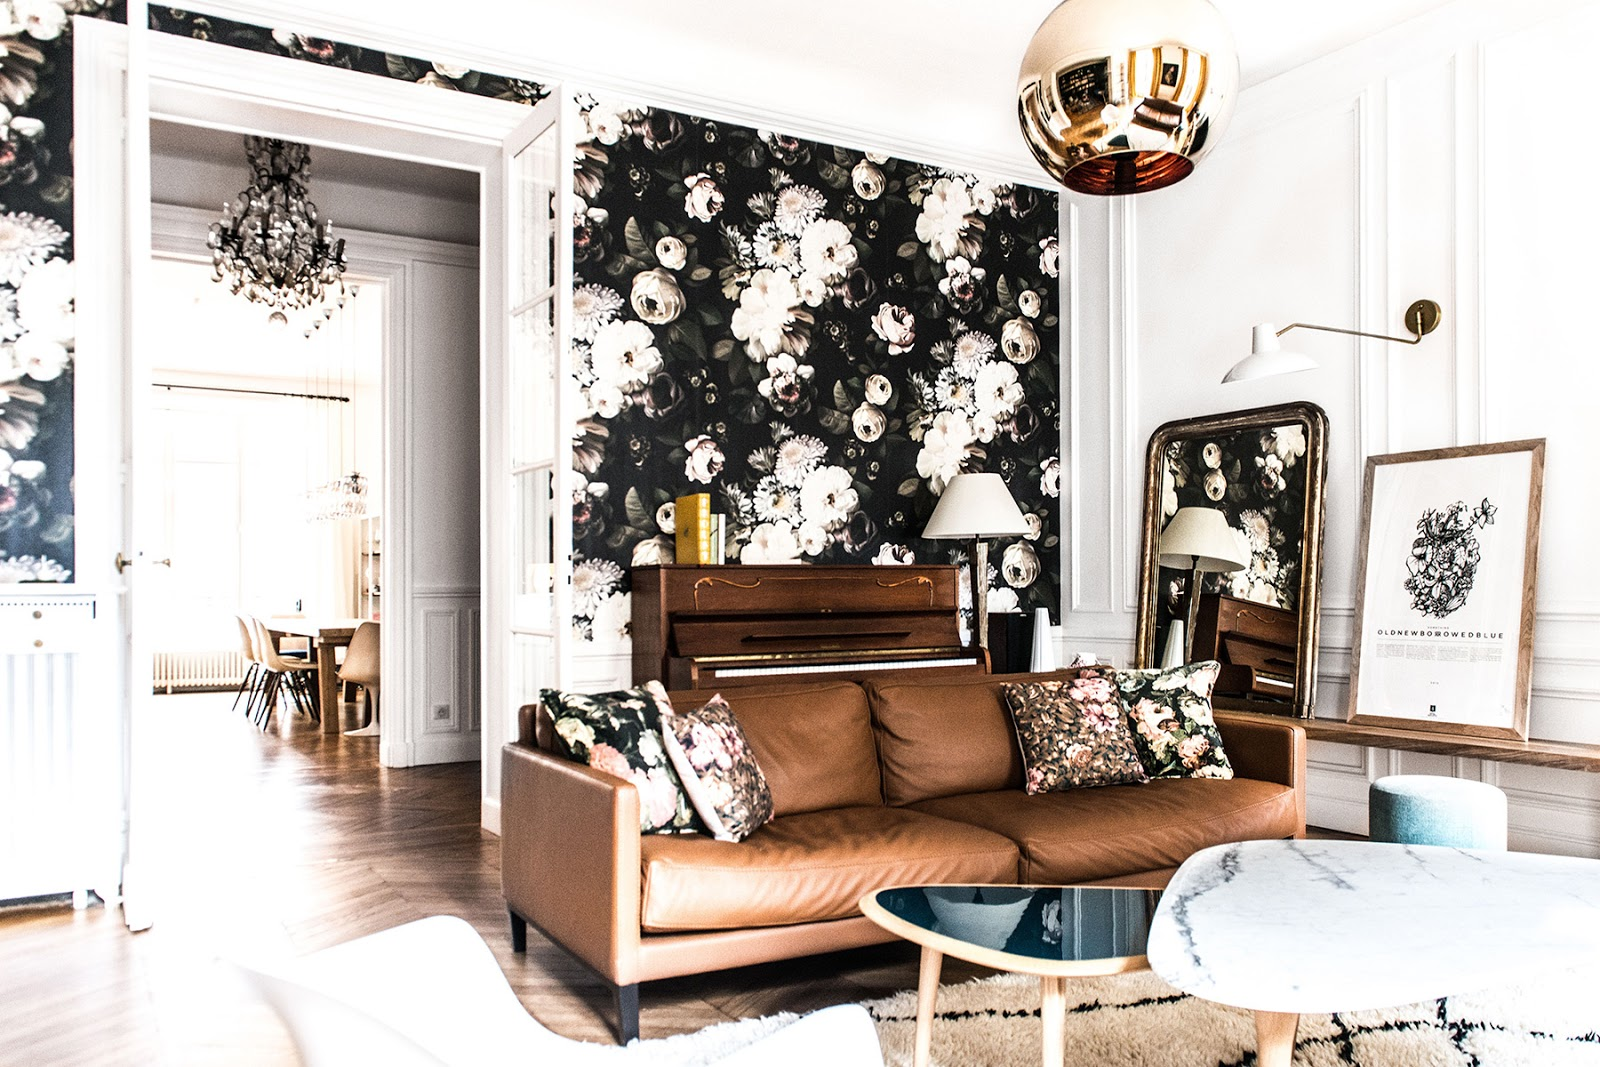 bohemian and chic paris apartment with parquet floors, eames and saarinen chairs, tom dixon lamps and wallpapers